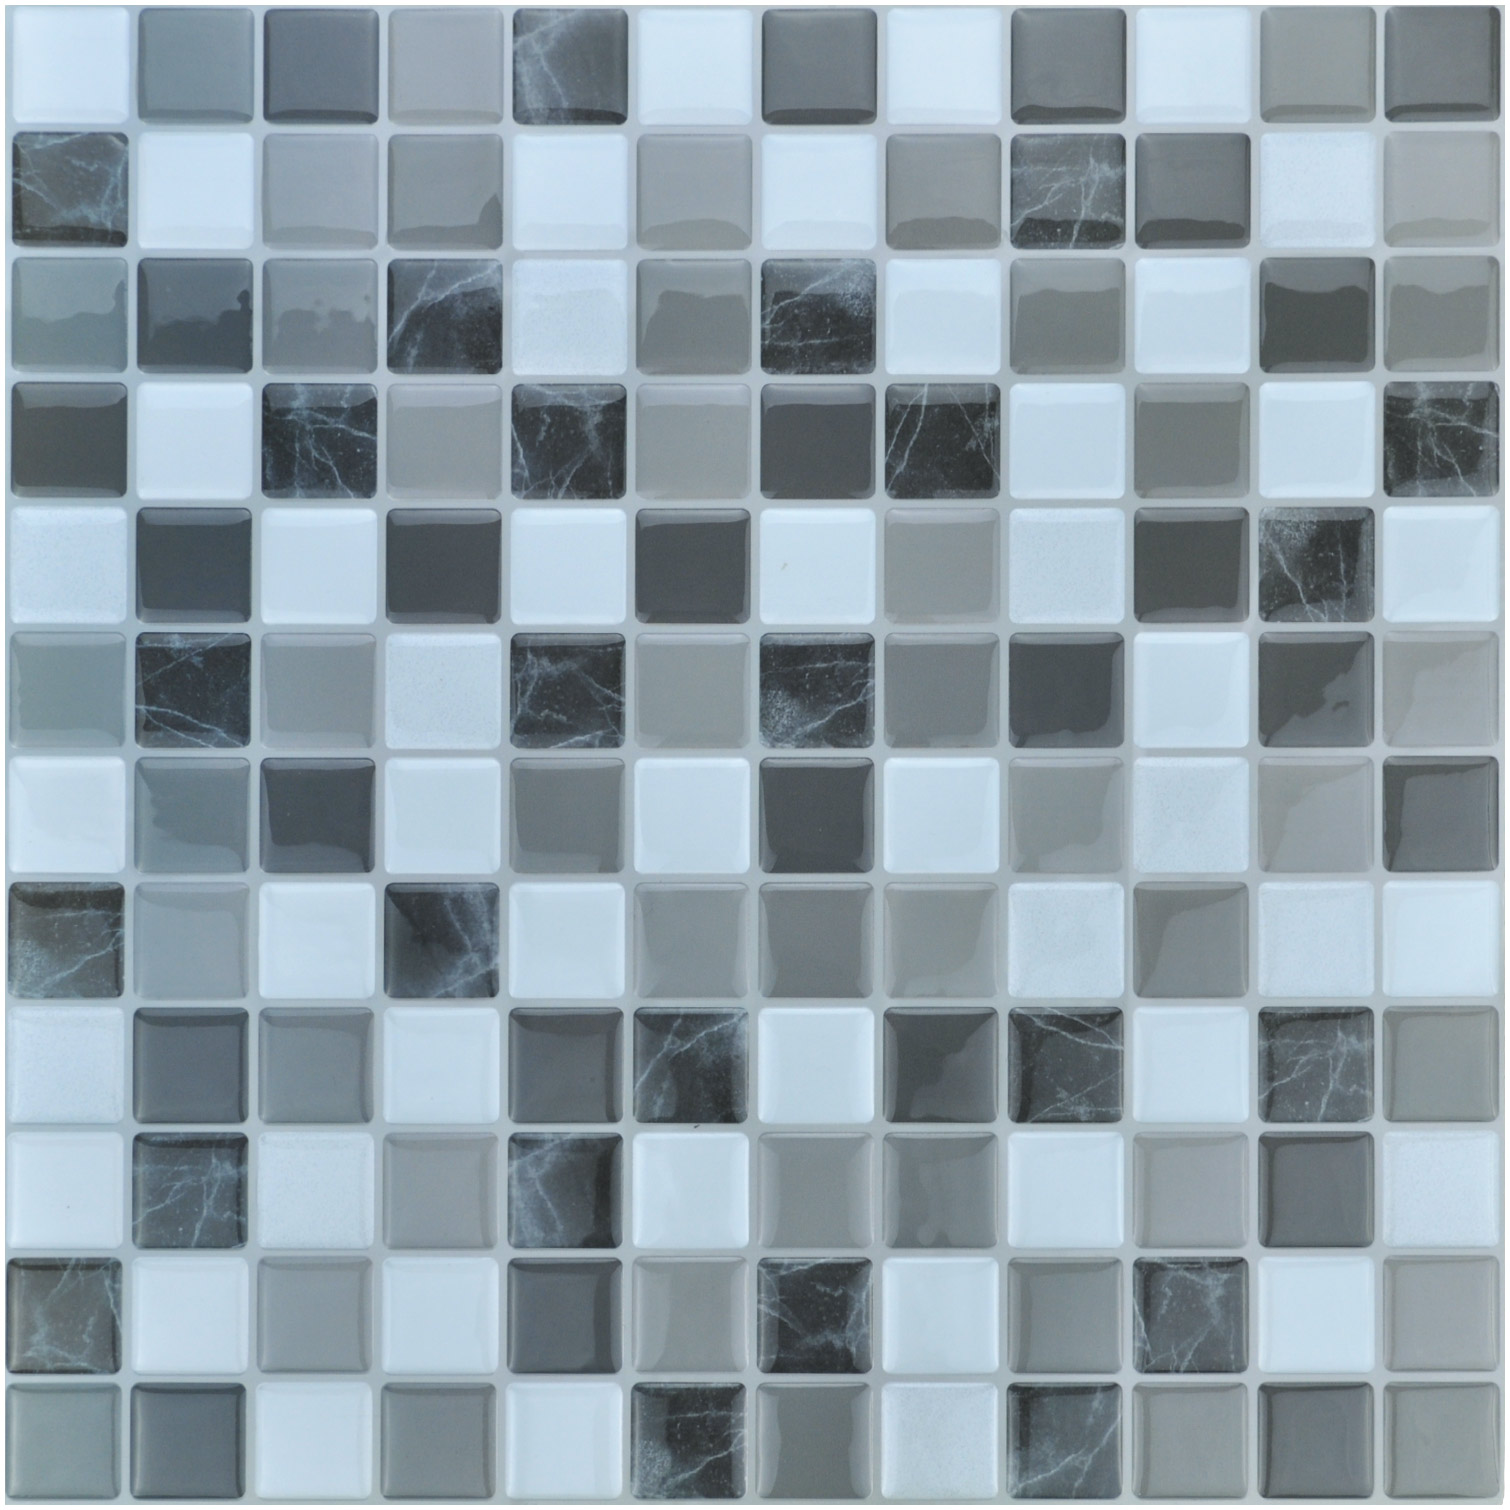 A17019 - Peel and Stick Mosaic Smart Tiles, 12 inch x 12inch Set of 10